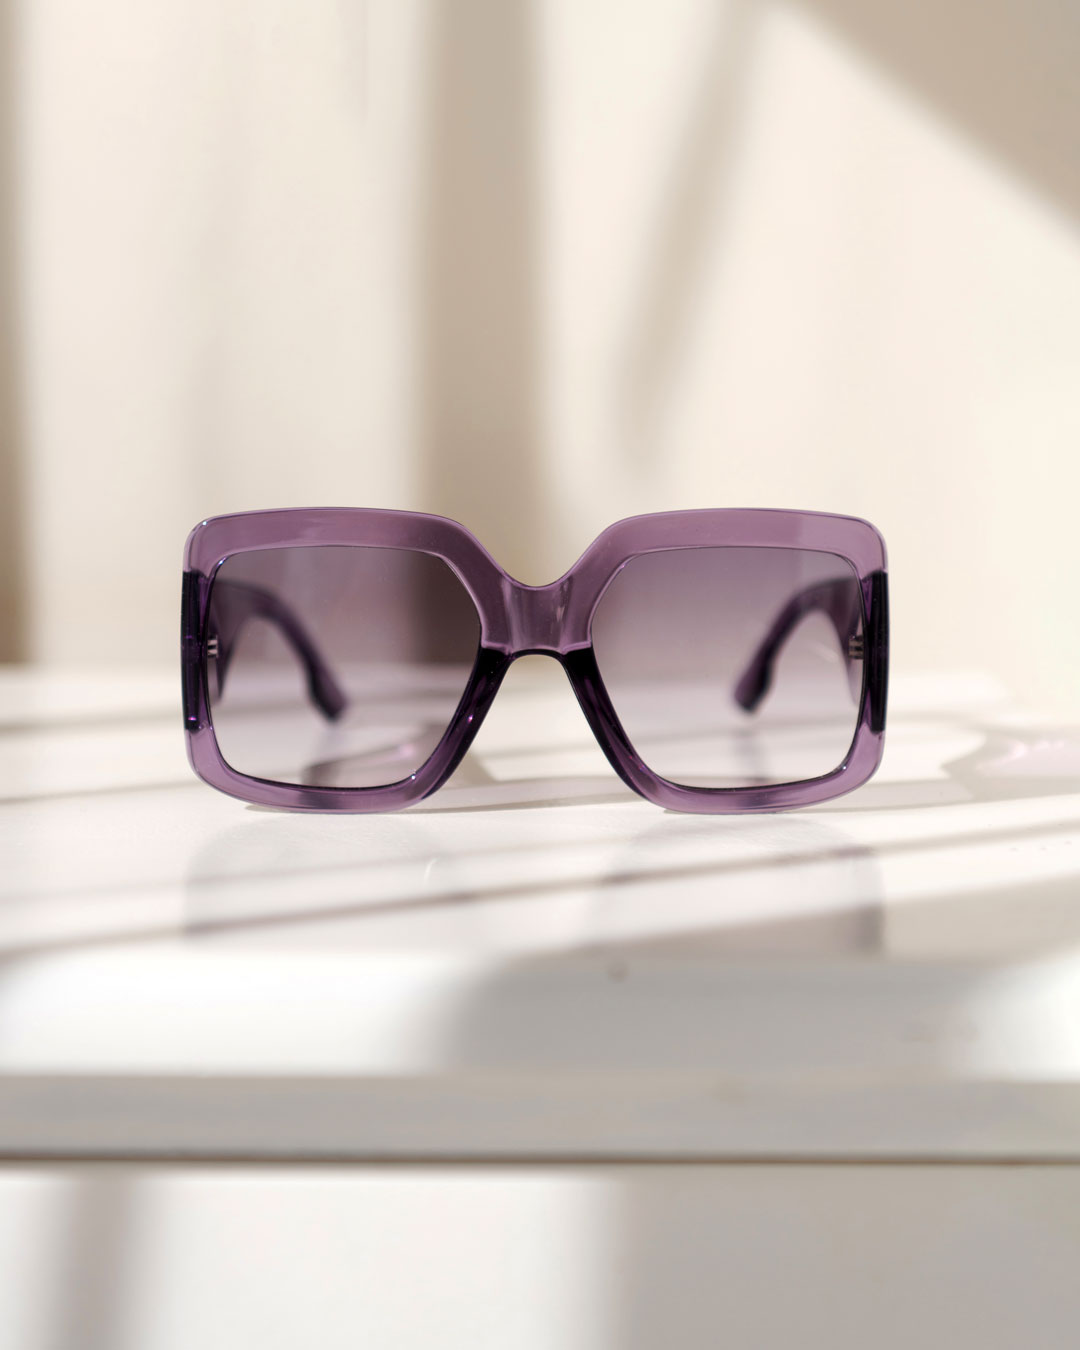 Oversized purple sunglasses with purple lens tints rest on top of a white surface.